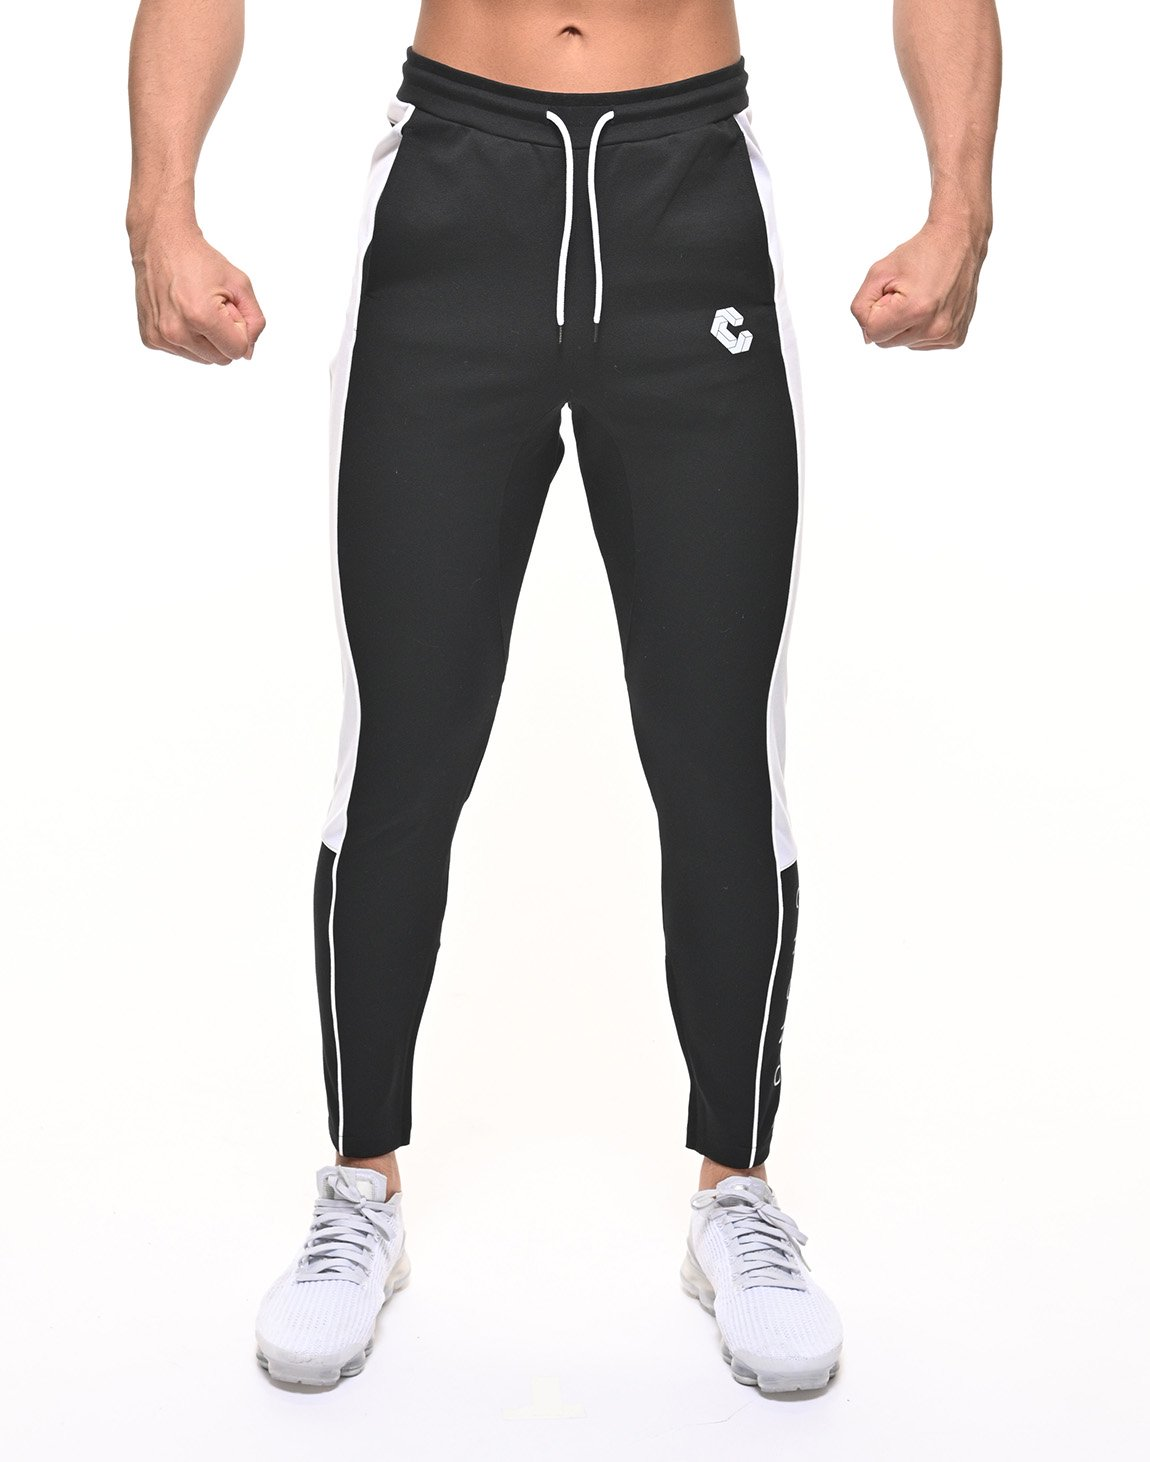 <img class='new_mark_img1' src='https://img.shop-pro.jp/img/new/icons1.gif' style='border:none;display:inline;margin:0px;padding:0px;width:auto;' />CRONOS THICK LINE LOGO PANTS【BLACK】